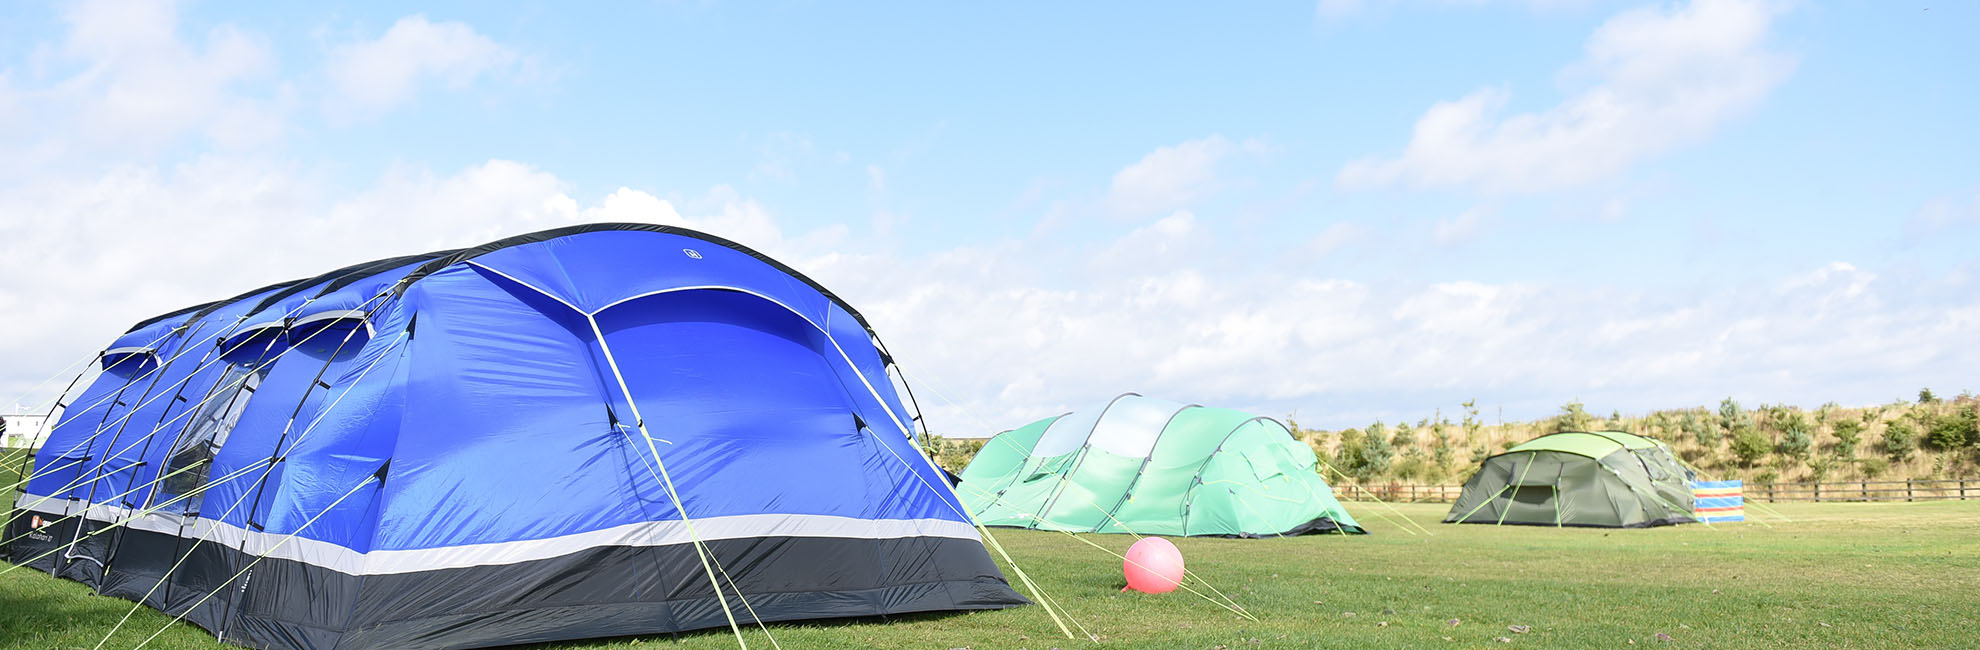 Tents pitched up on the grass